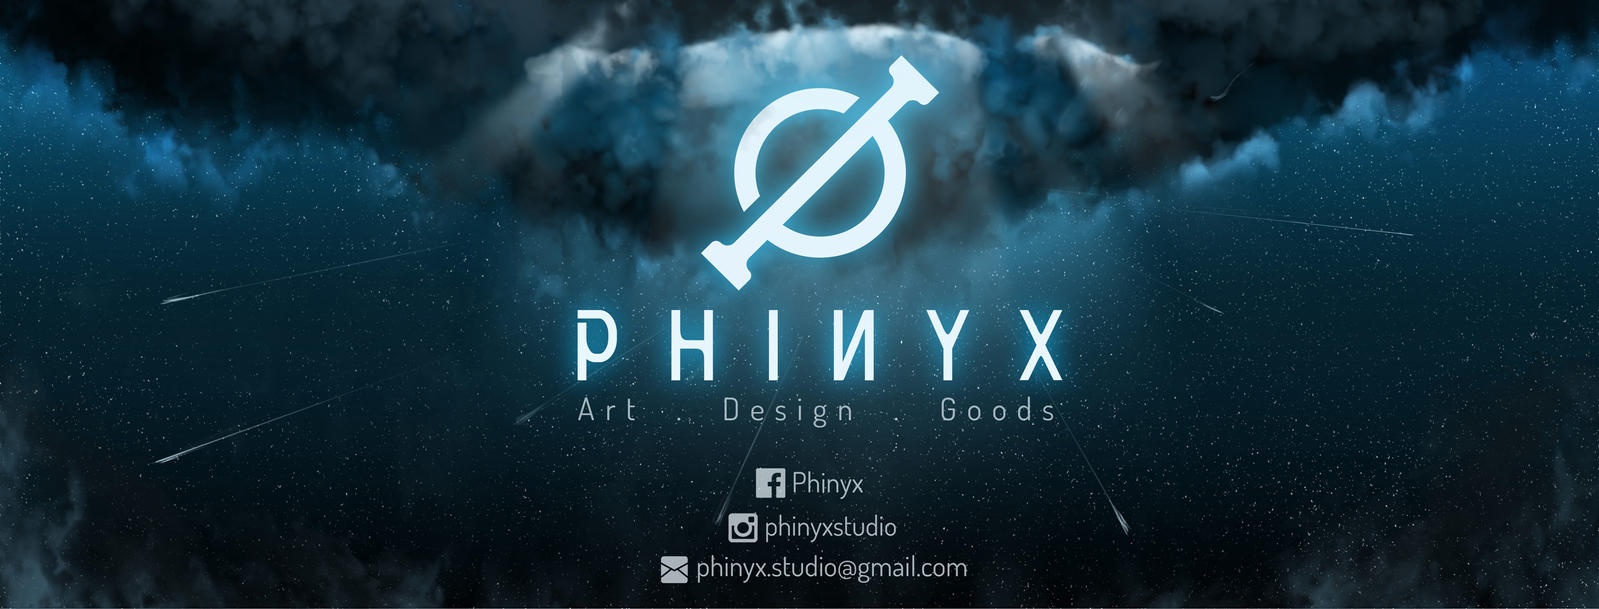 Phinyx banner rev by Loone-Wolf